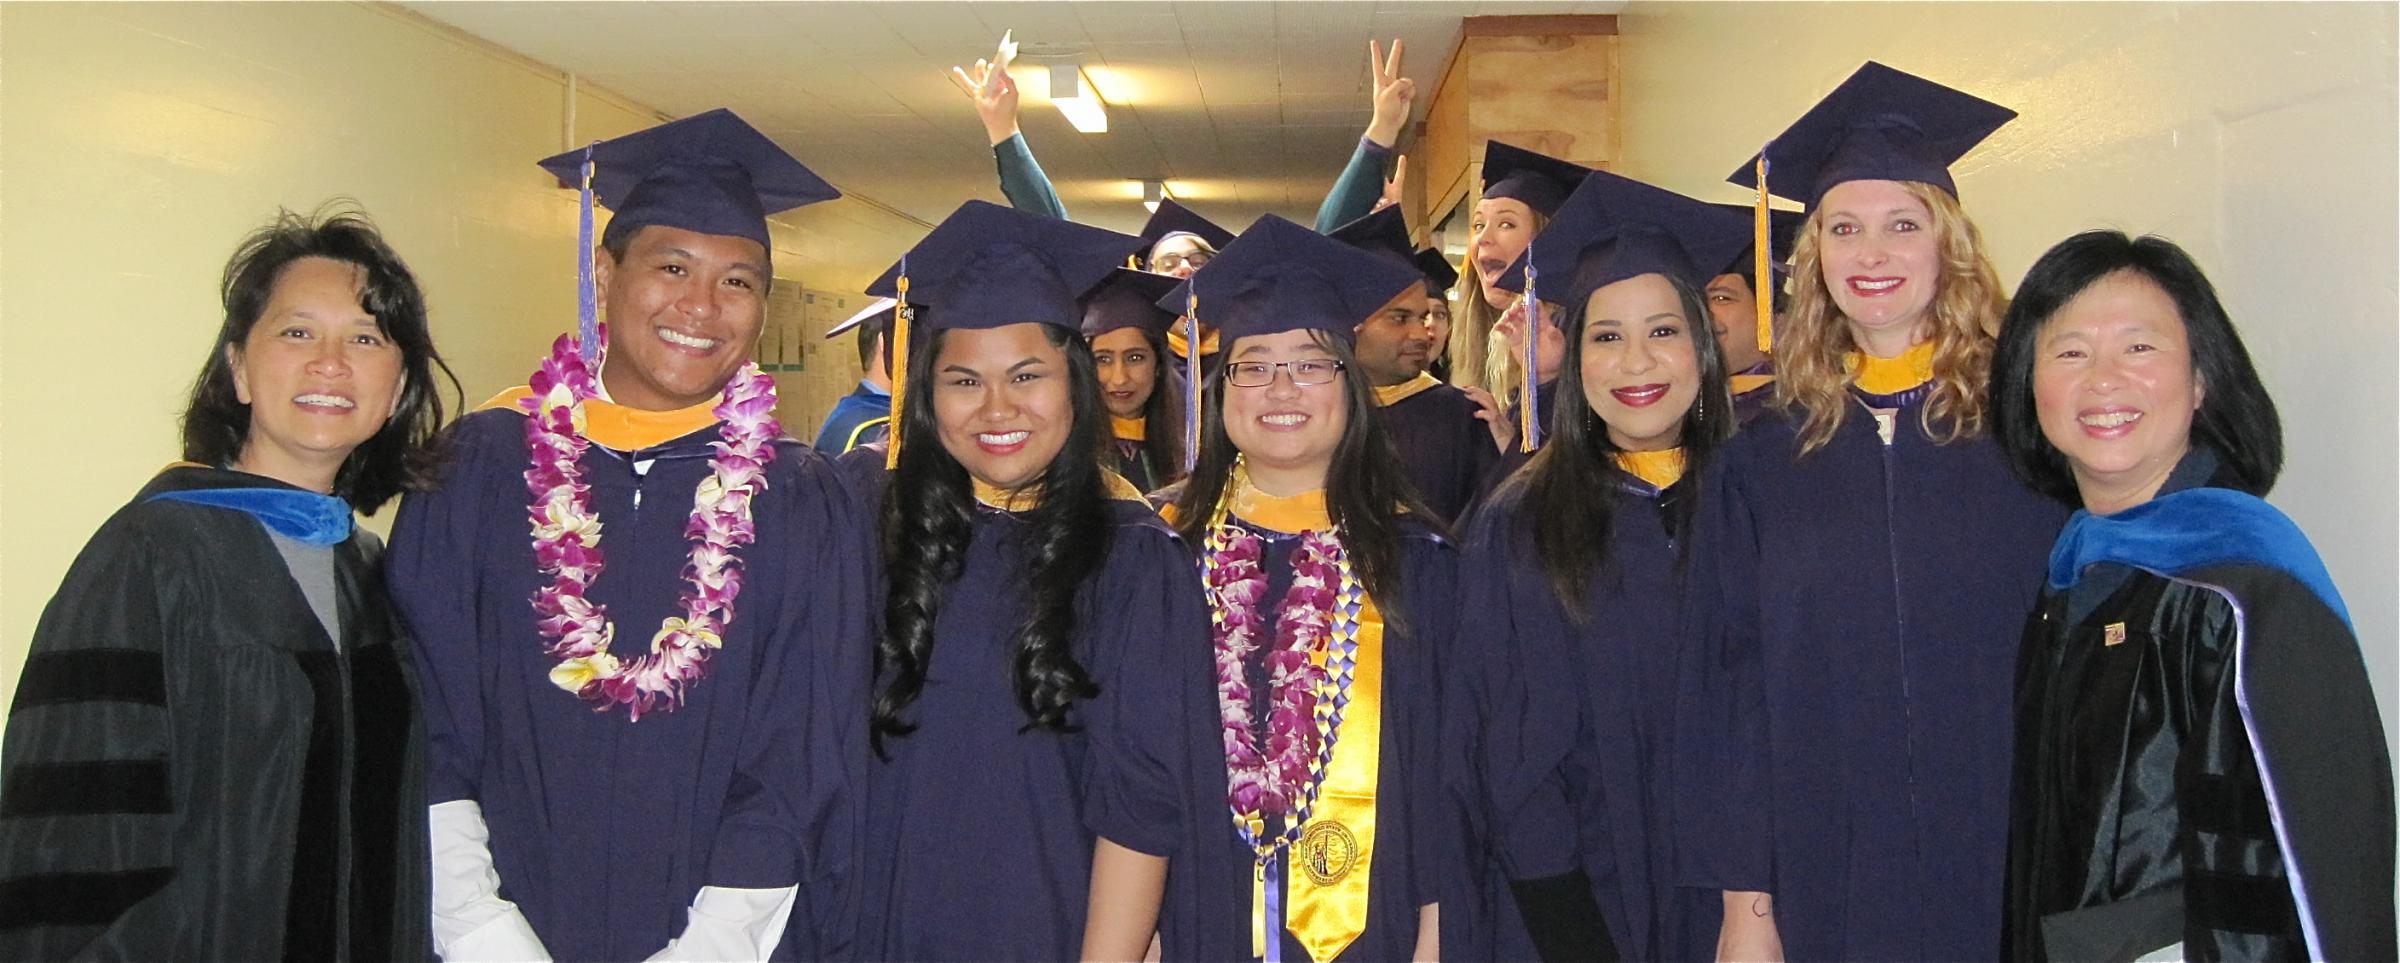 Cohort 3 graduates at Biology graduation event at SFSU gym in May 2014